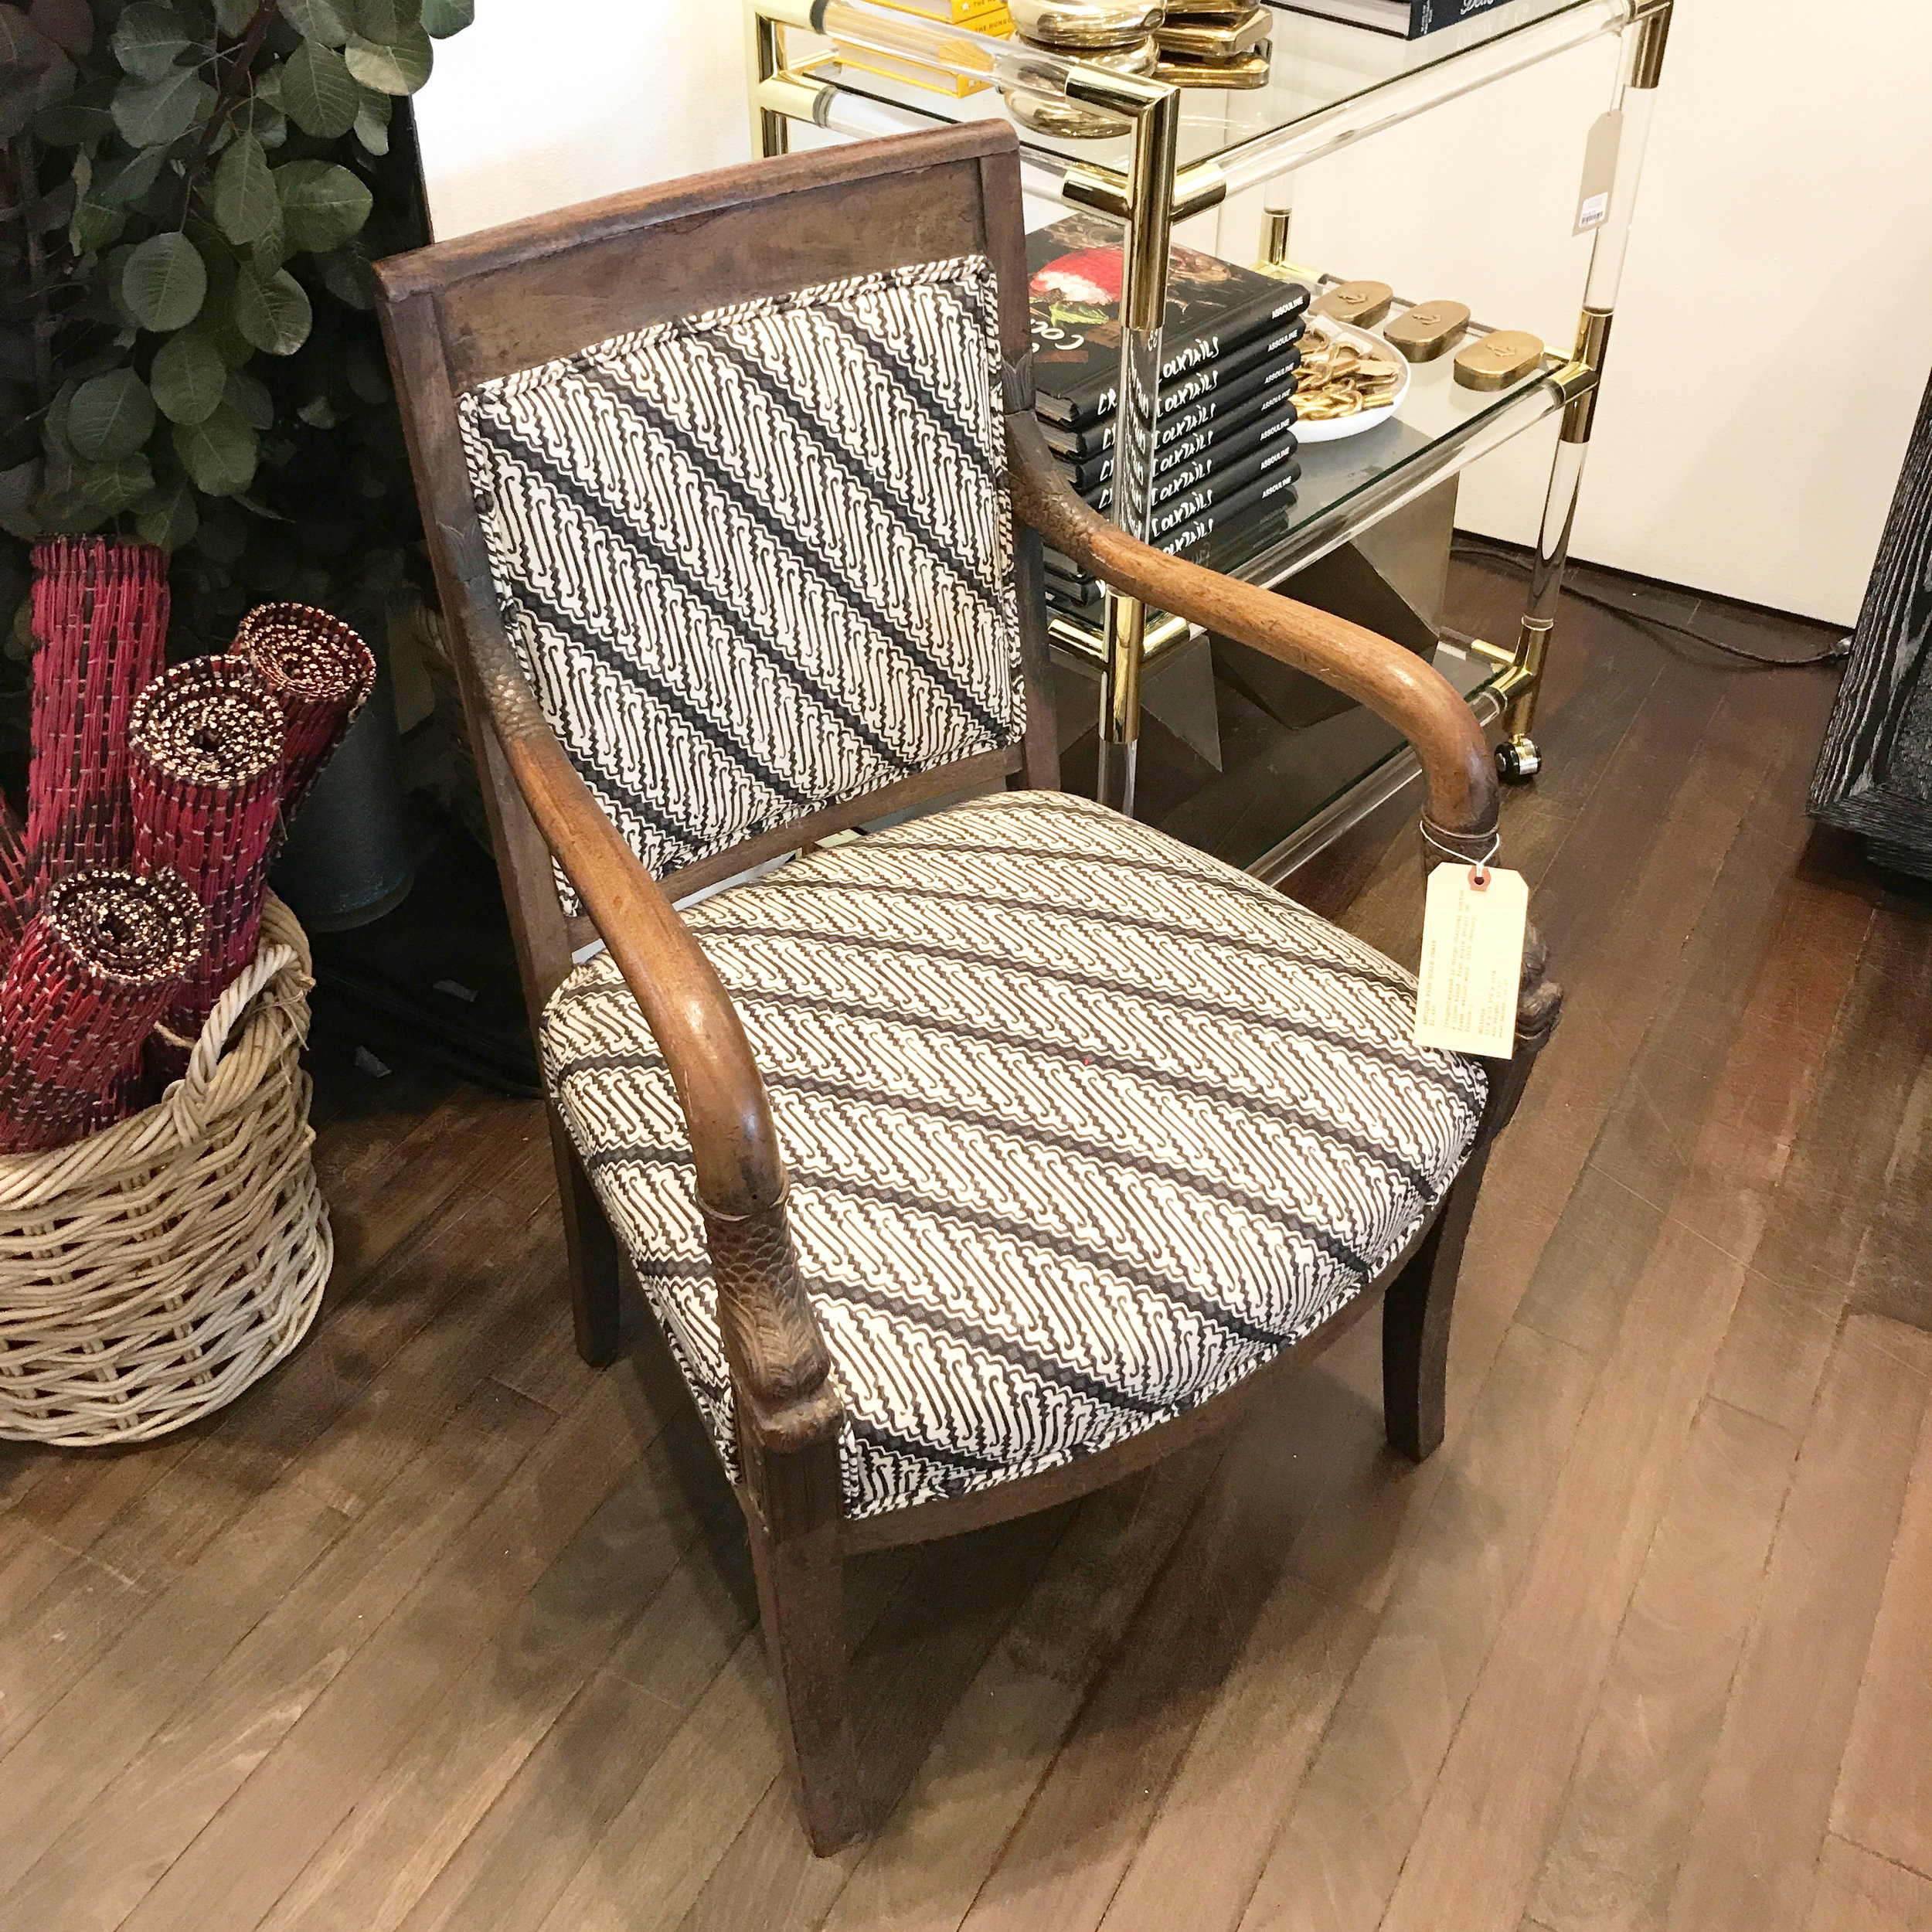 Antique Fish Scale Chair -$2,495 |  GREAT FOR: An accent chair in a foyer or living room